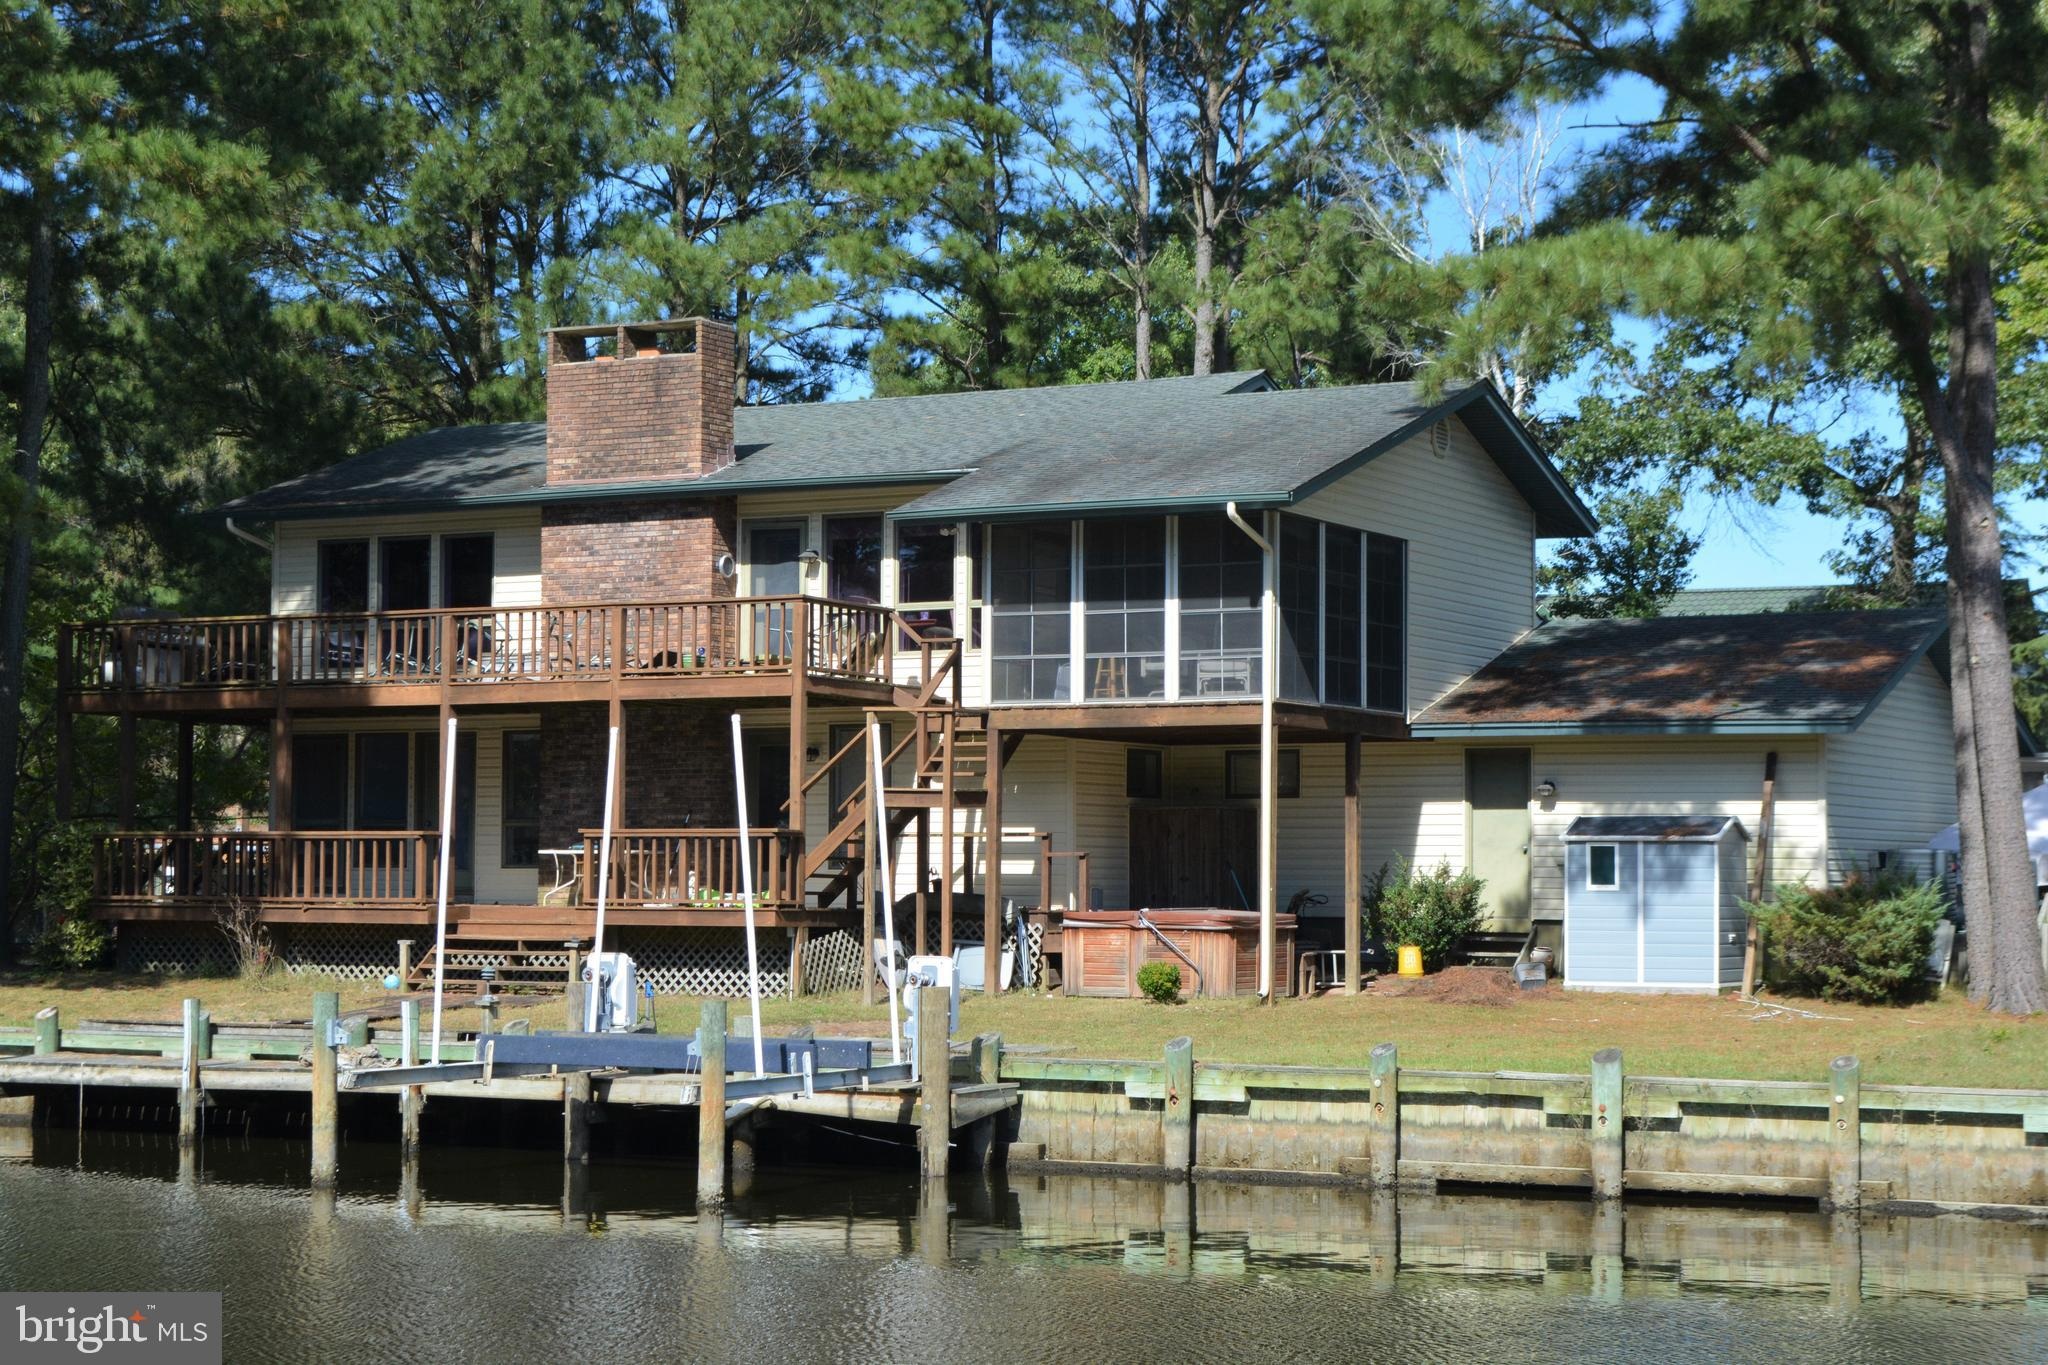 Unique waterfront home overlooking the 10th tee of the Ocean Pines golf course.  Spacious decks and 3 season porch have gorgeous views of both the waterway and fairway.  The home has a large 1/2 acre yard and over 200 feet of bulk-headed waterfront with dock and boat-lift. Two open living rooms, each with its own wood-burning fireplace and two master bedrooms, can accommodate your guests. Upgraded kitchen and dining room have brilliant views of the waterway and golf course. Downstairs living room includes a wet bar for entertaining.  Hot tub, outdoor shower and garage with workbench. Encapsulated crawl space with dehumidifier. Dual zone HVAC. 1 year HMS Home Warranty